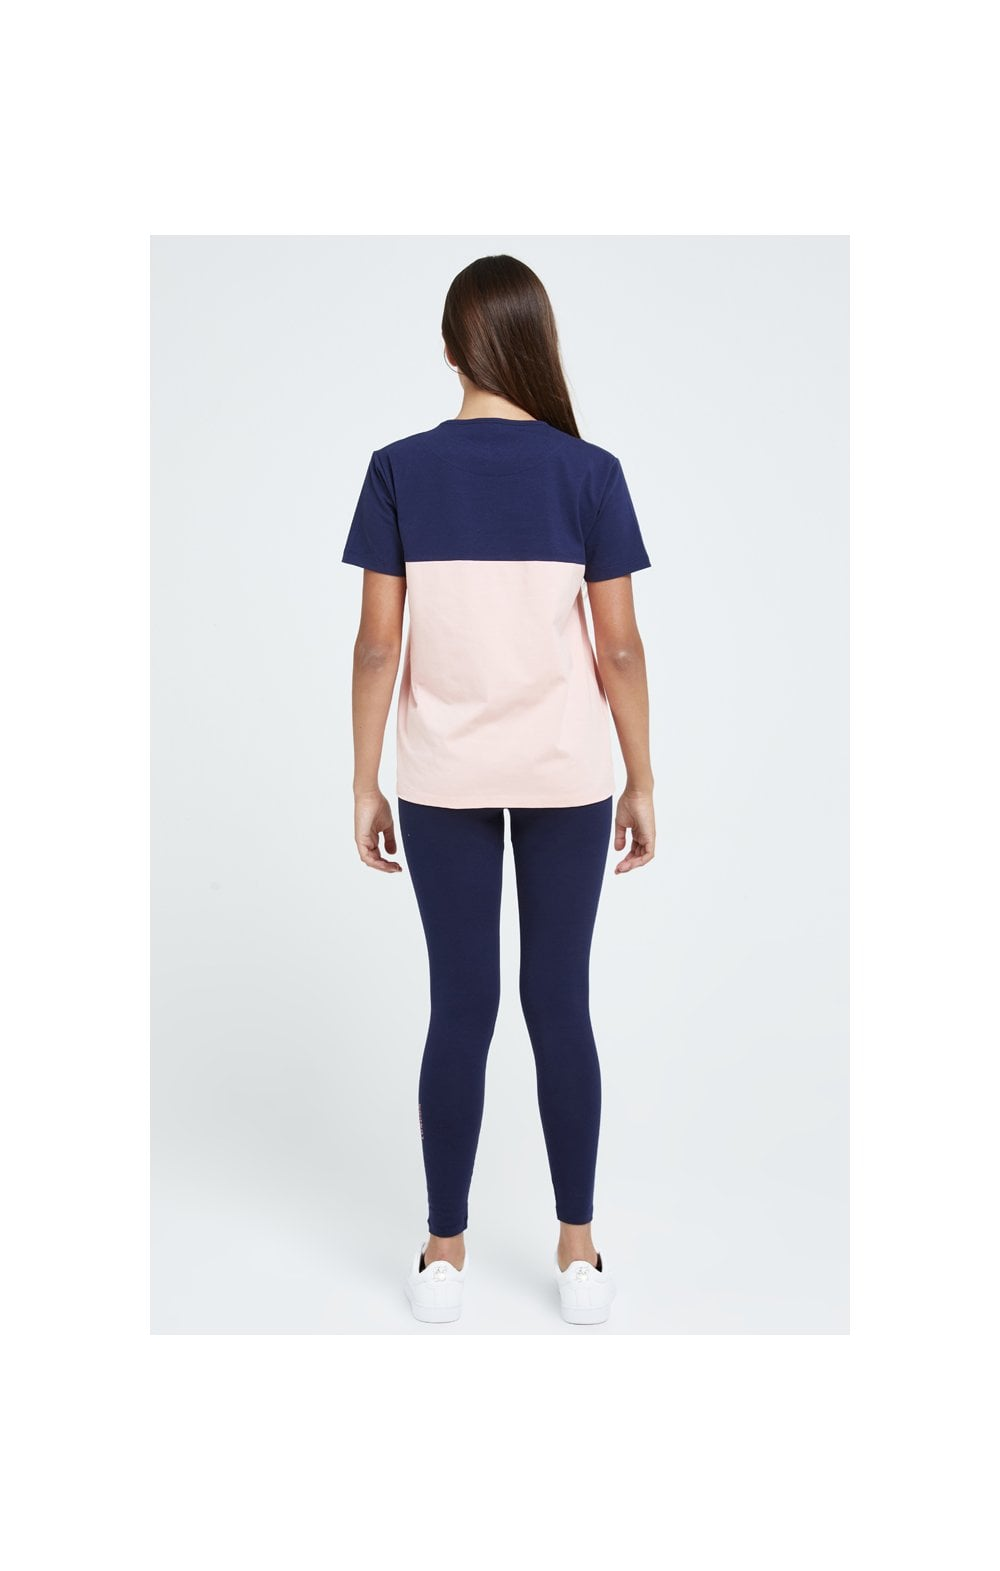 Illusive London Colour Block Boyfriend Tee - Navy & Pink (3)